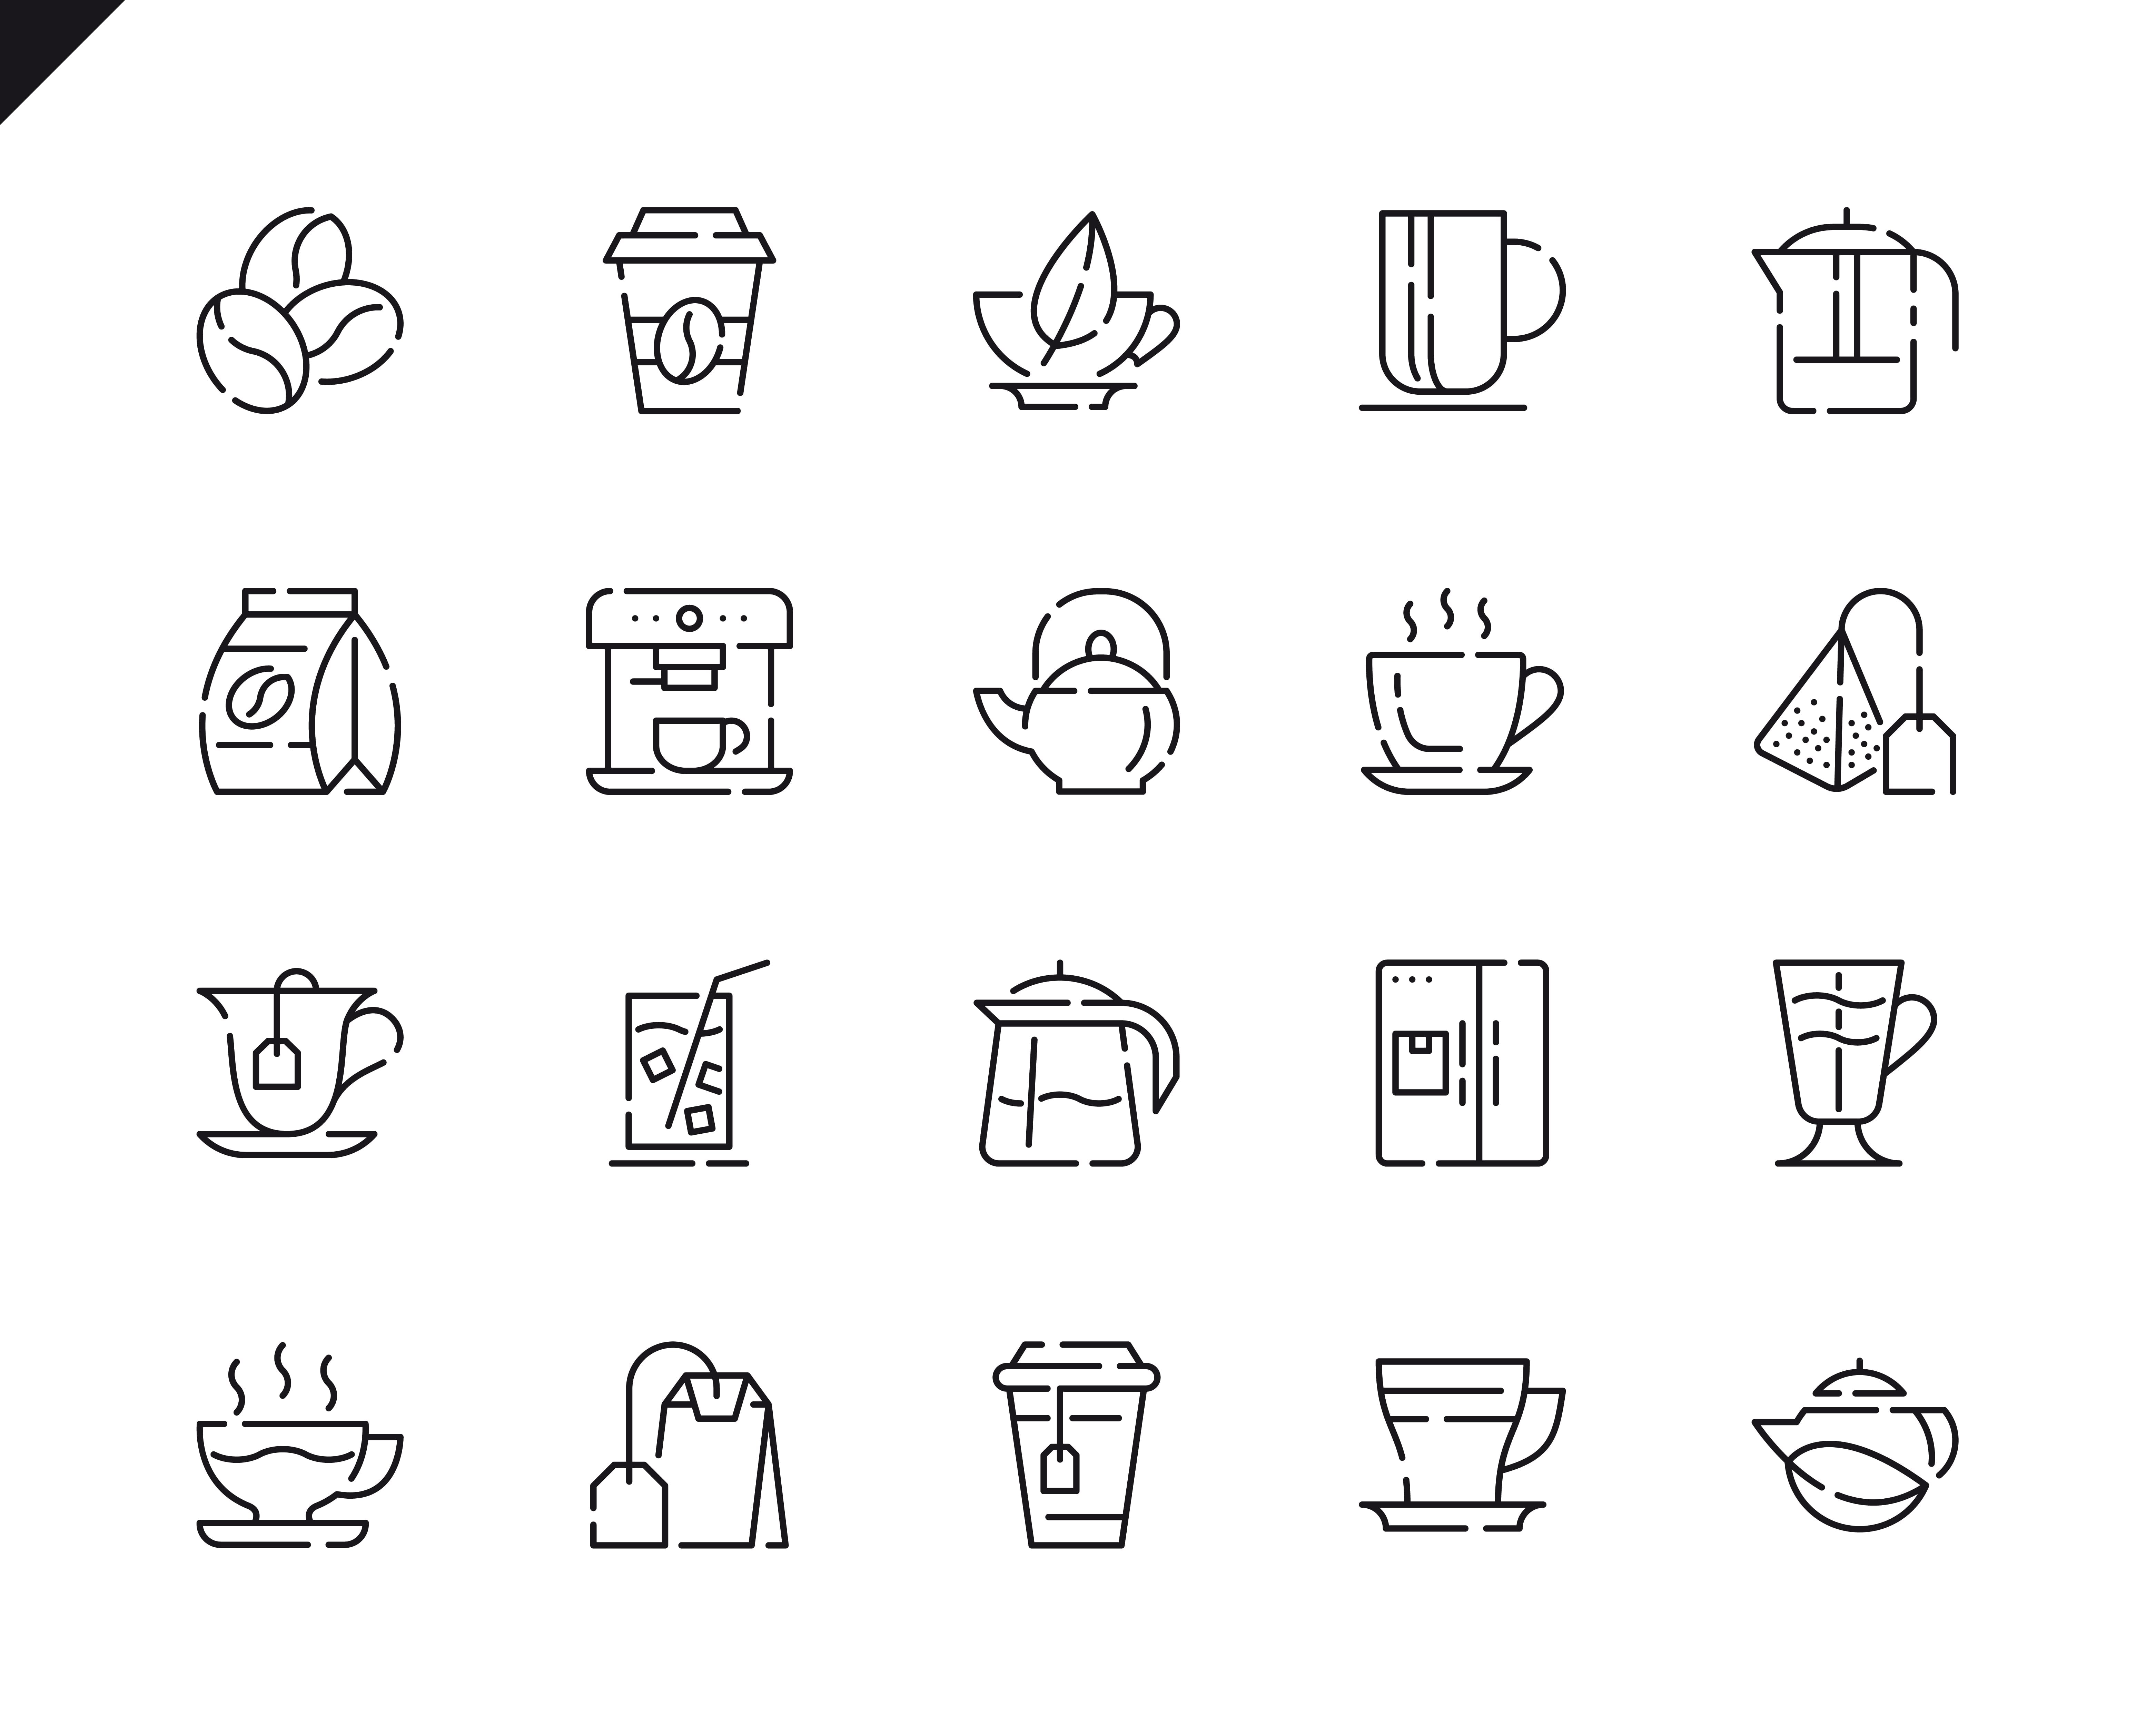 500 Business Line Icons - $22 ONLY - 11 4